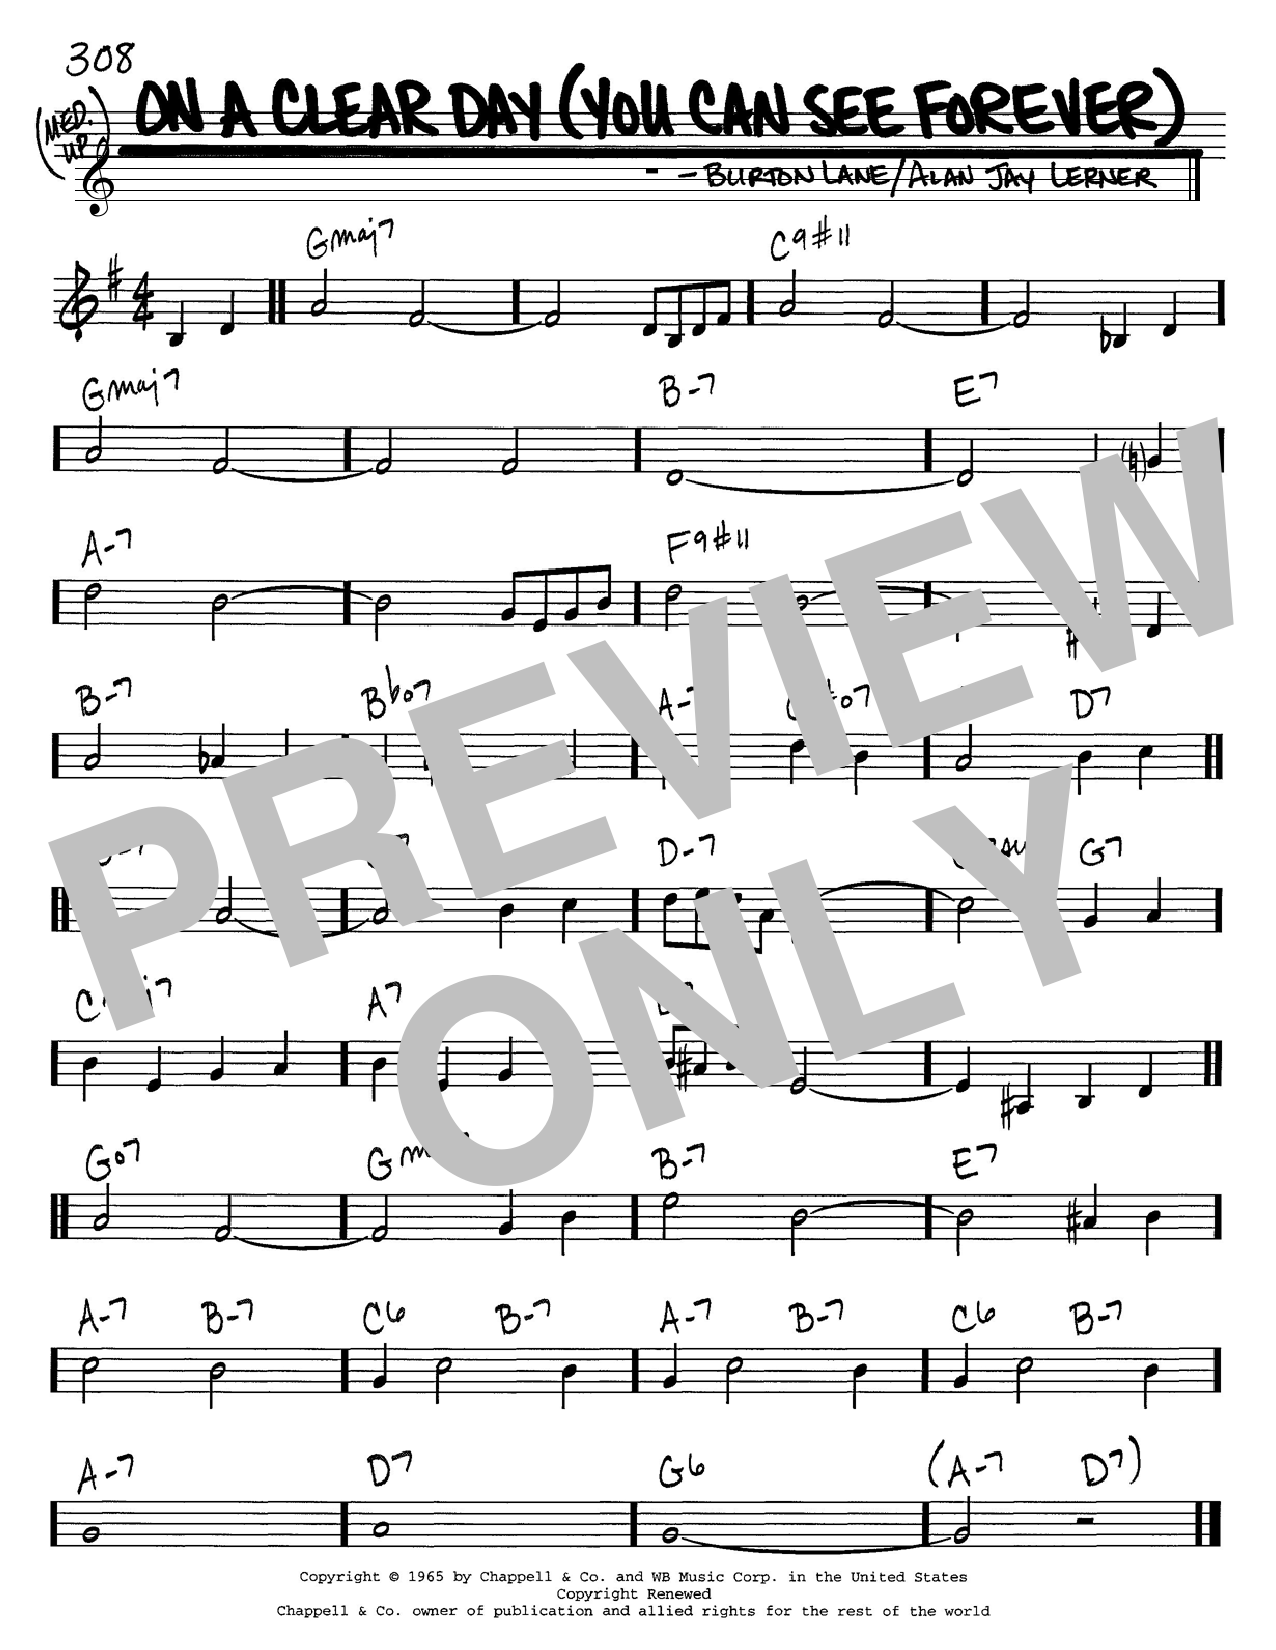 Alan Jay Lerner On A Clear Day (You Can See Forever) sheet music notes and chords. Download Printable PDF.